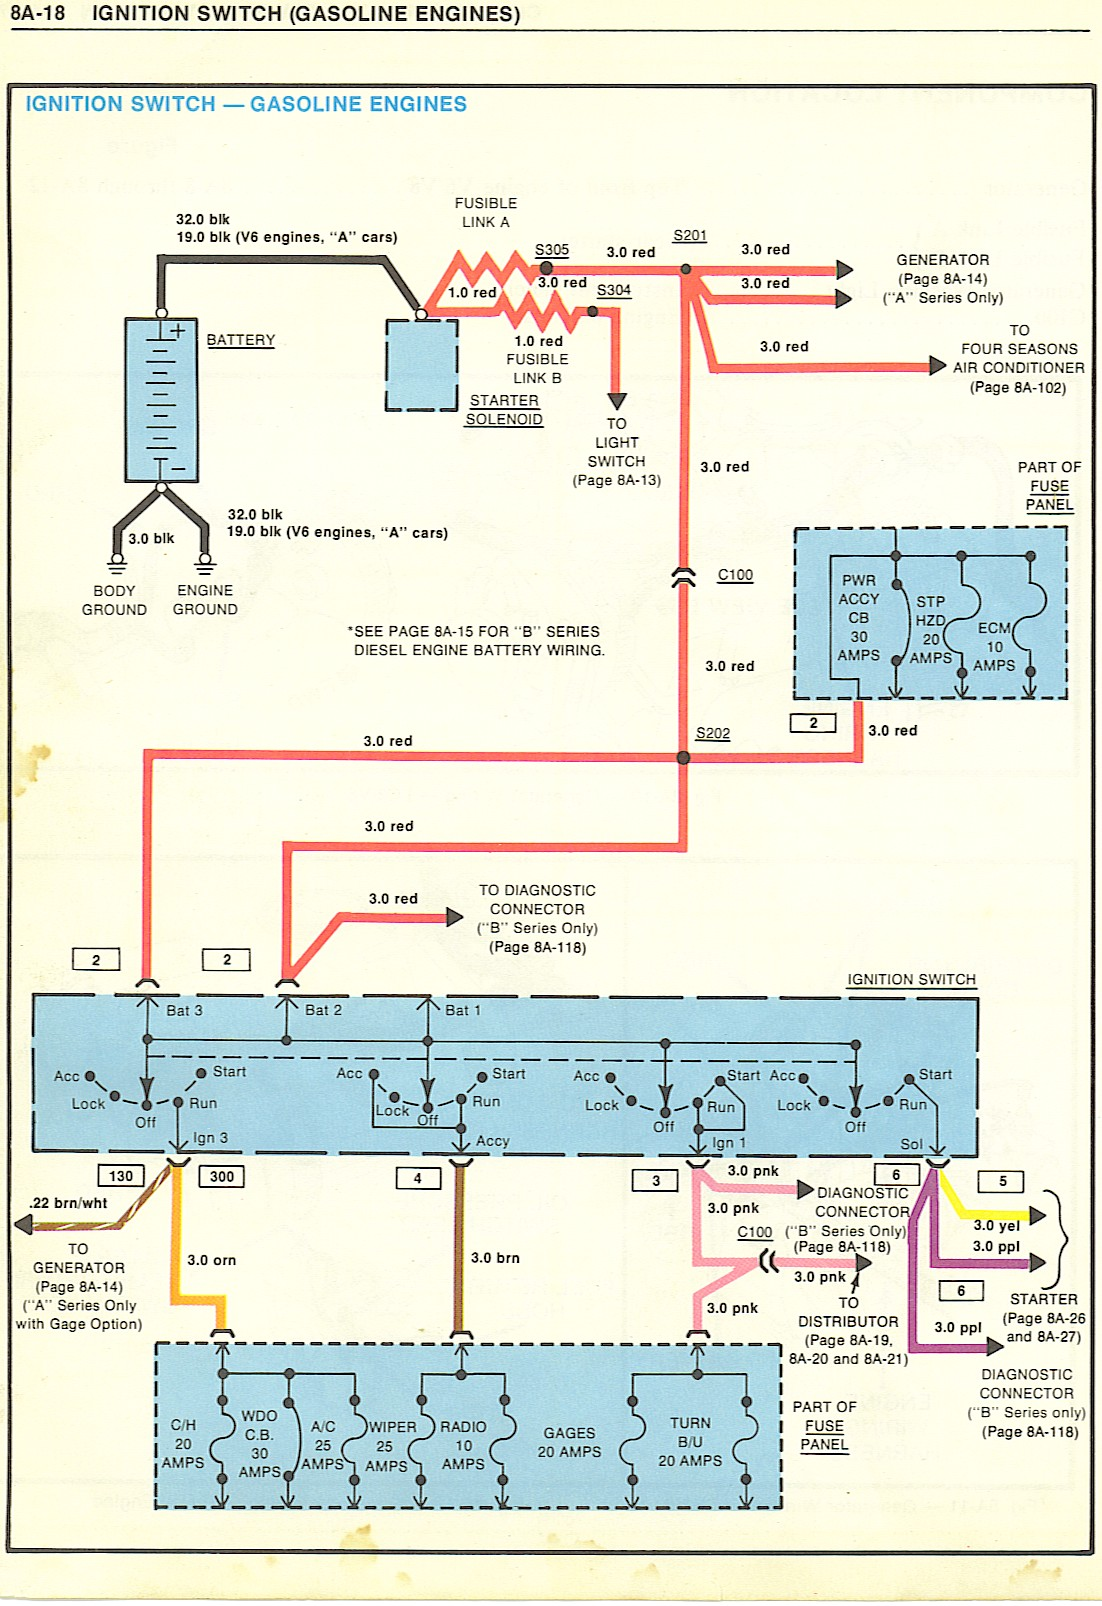 wiring diagram for ignition switch schema hospital management system 68 chevelle get free image about